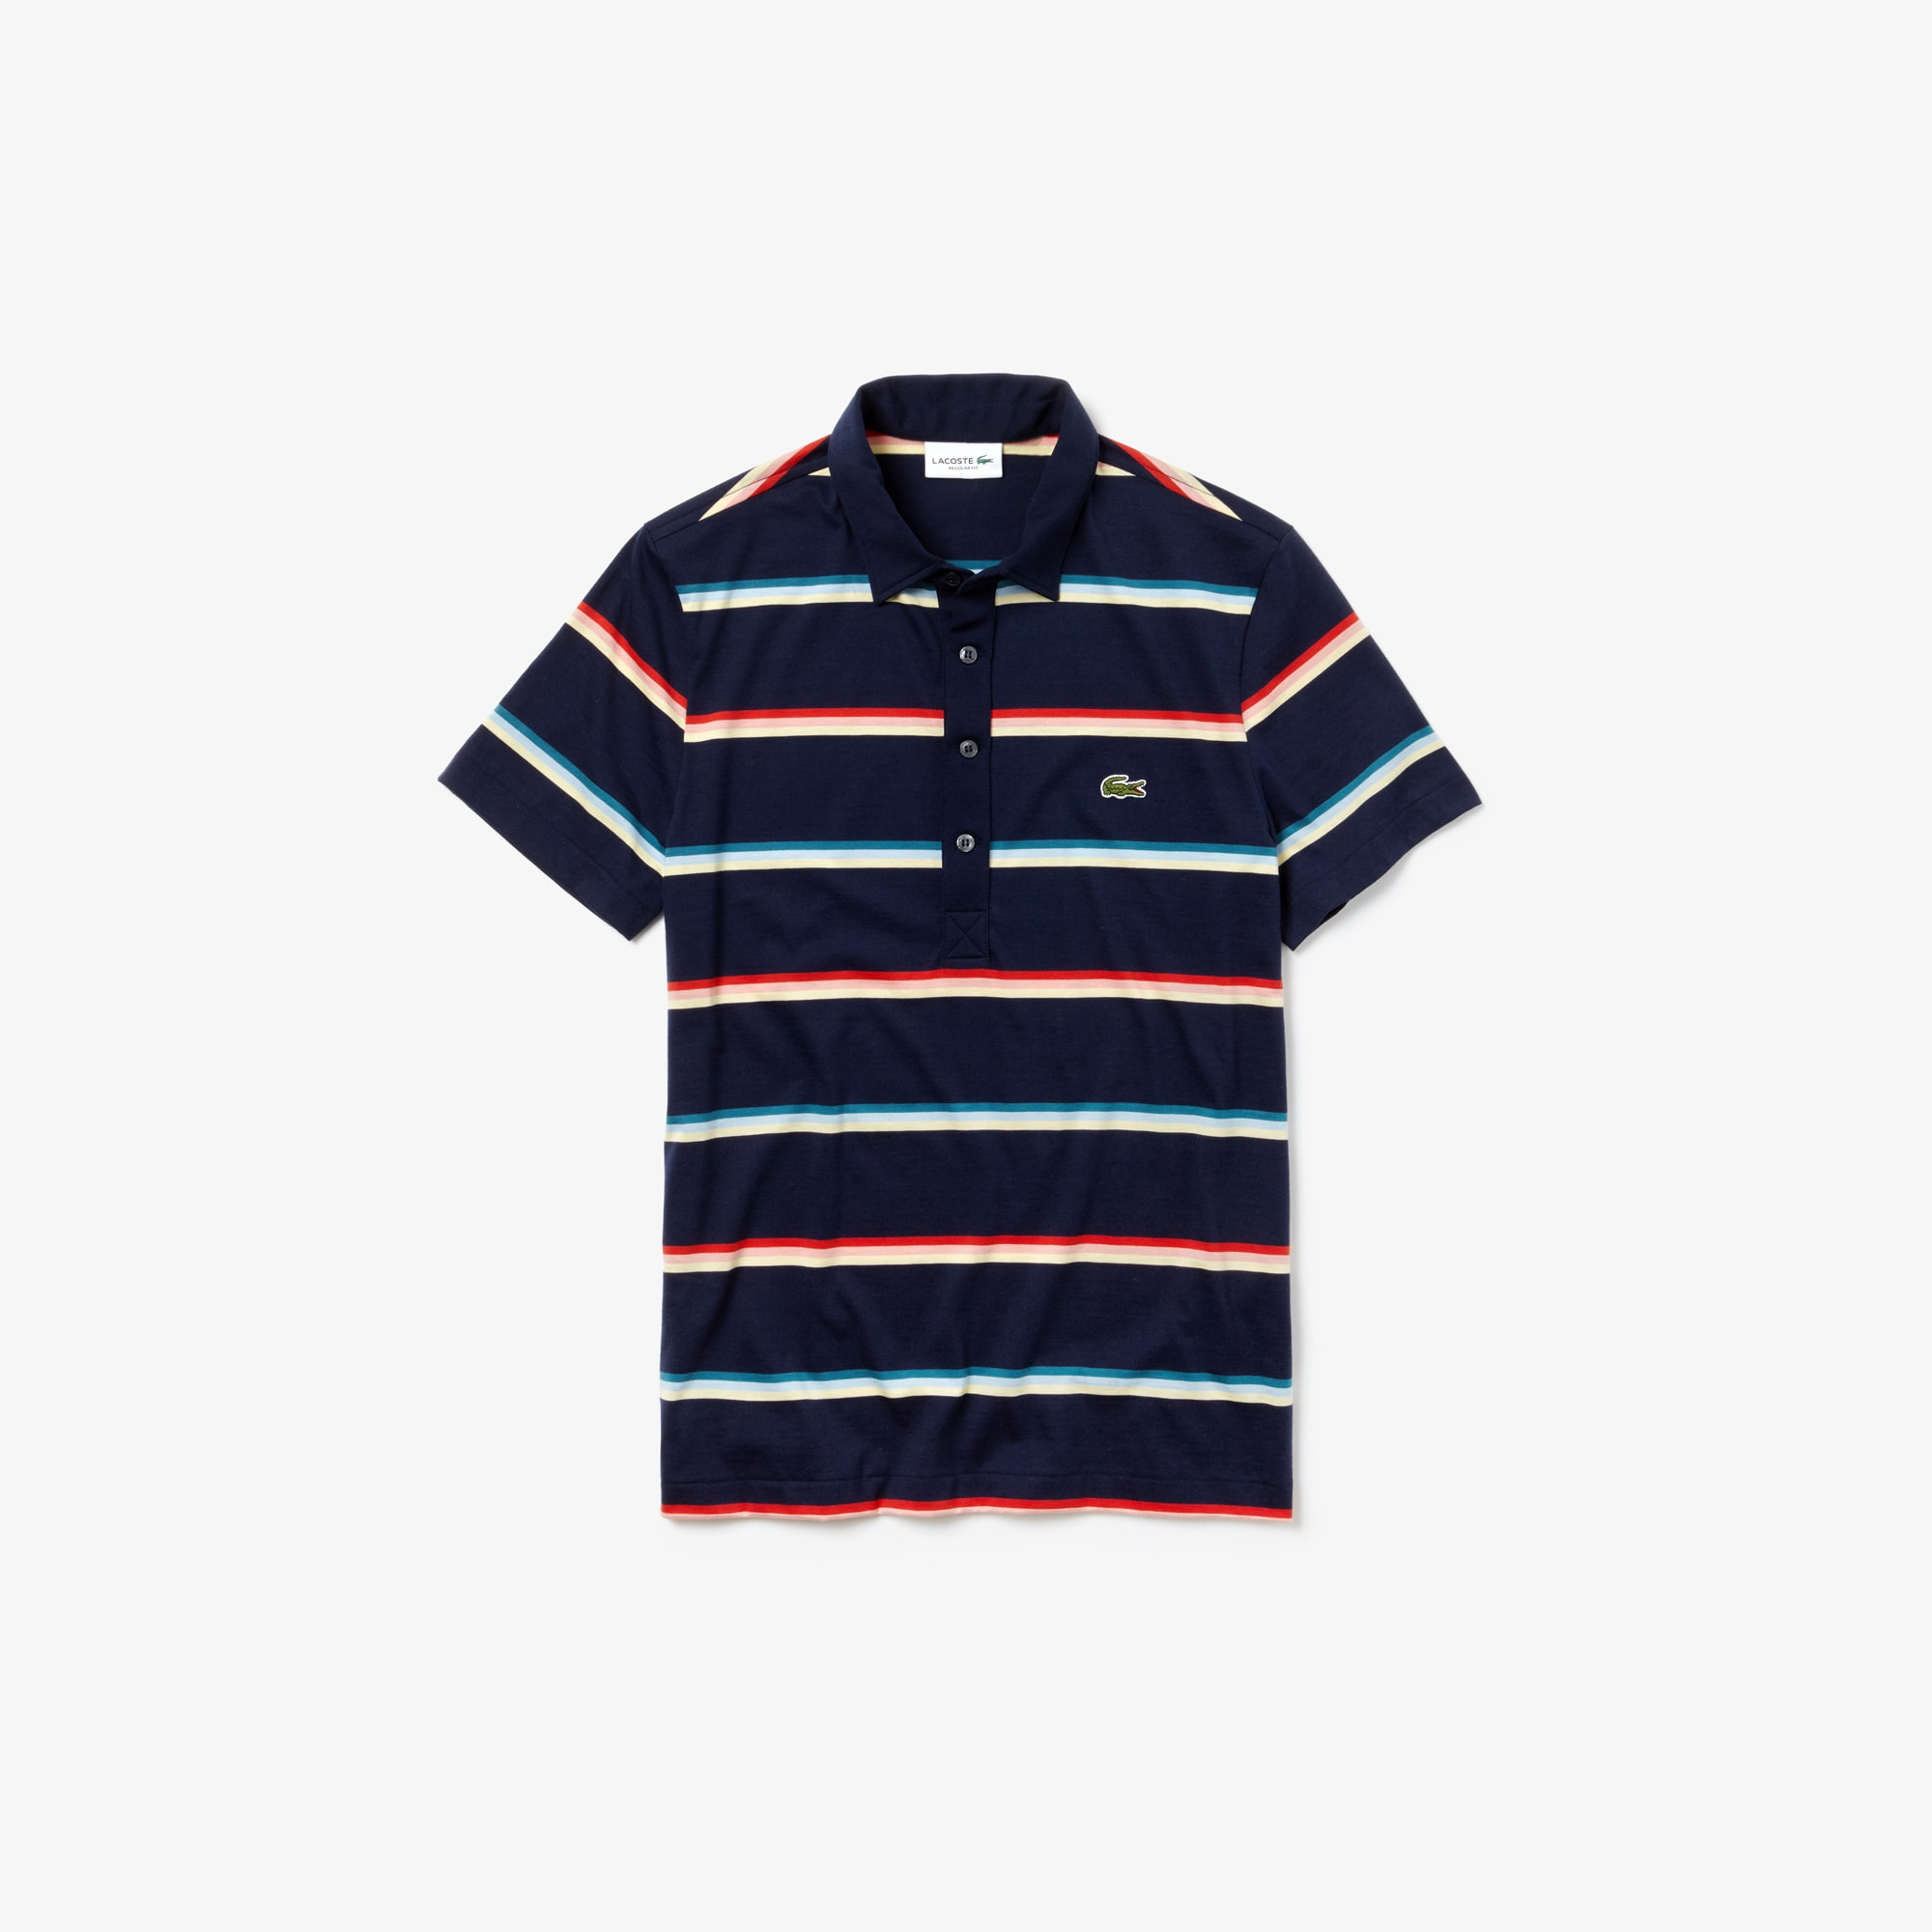 5499a9c7 Spotting Fake Lacoste Polo Shirts - DREAMWORKS